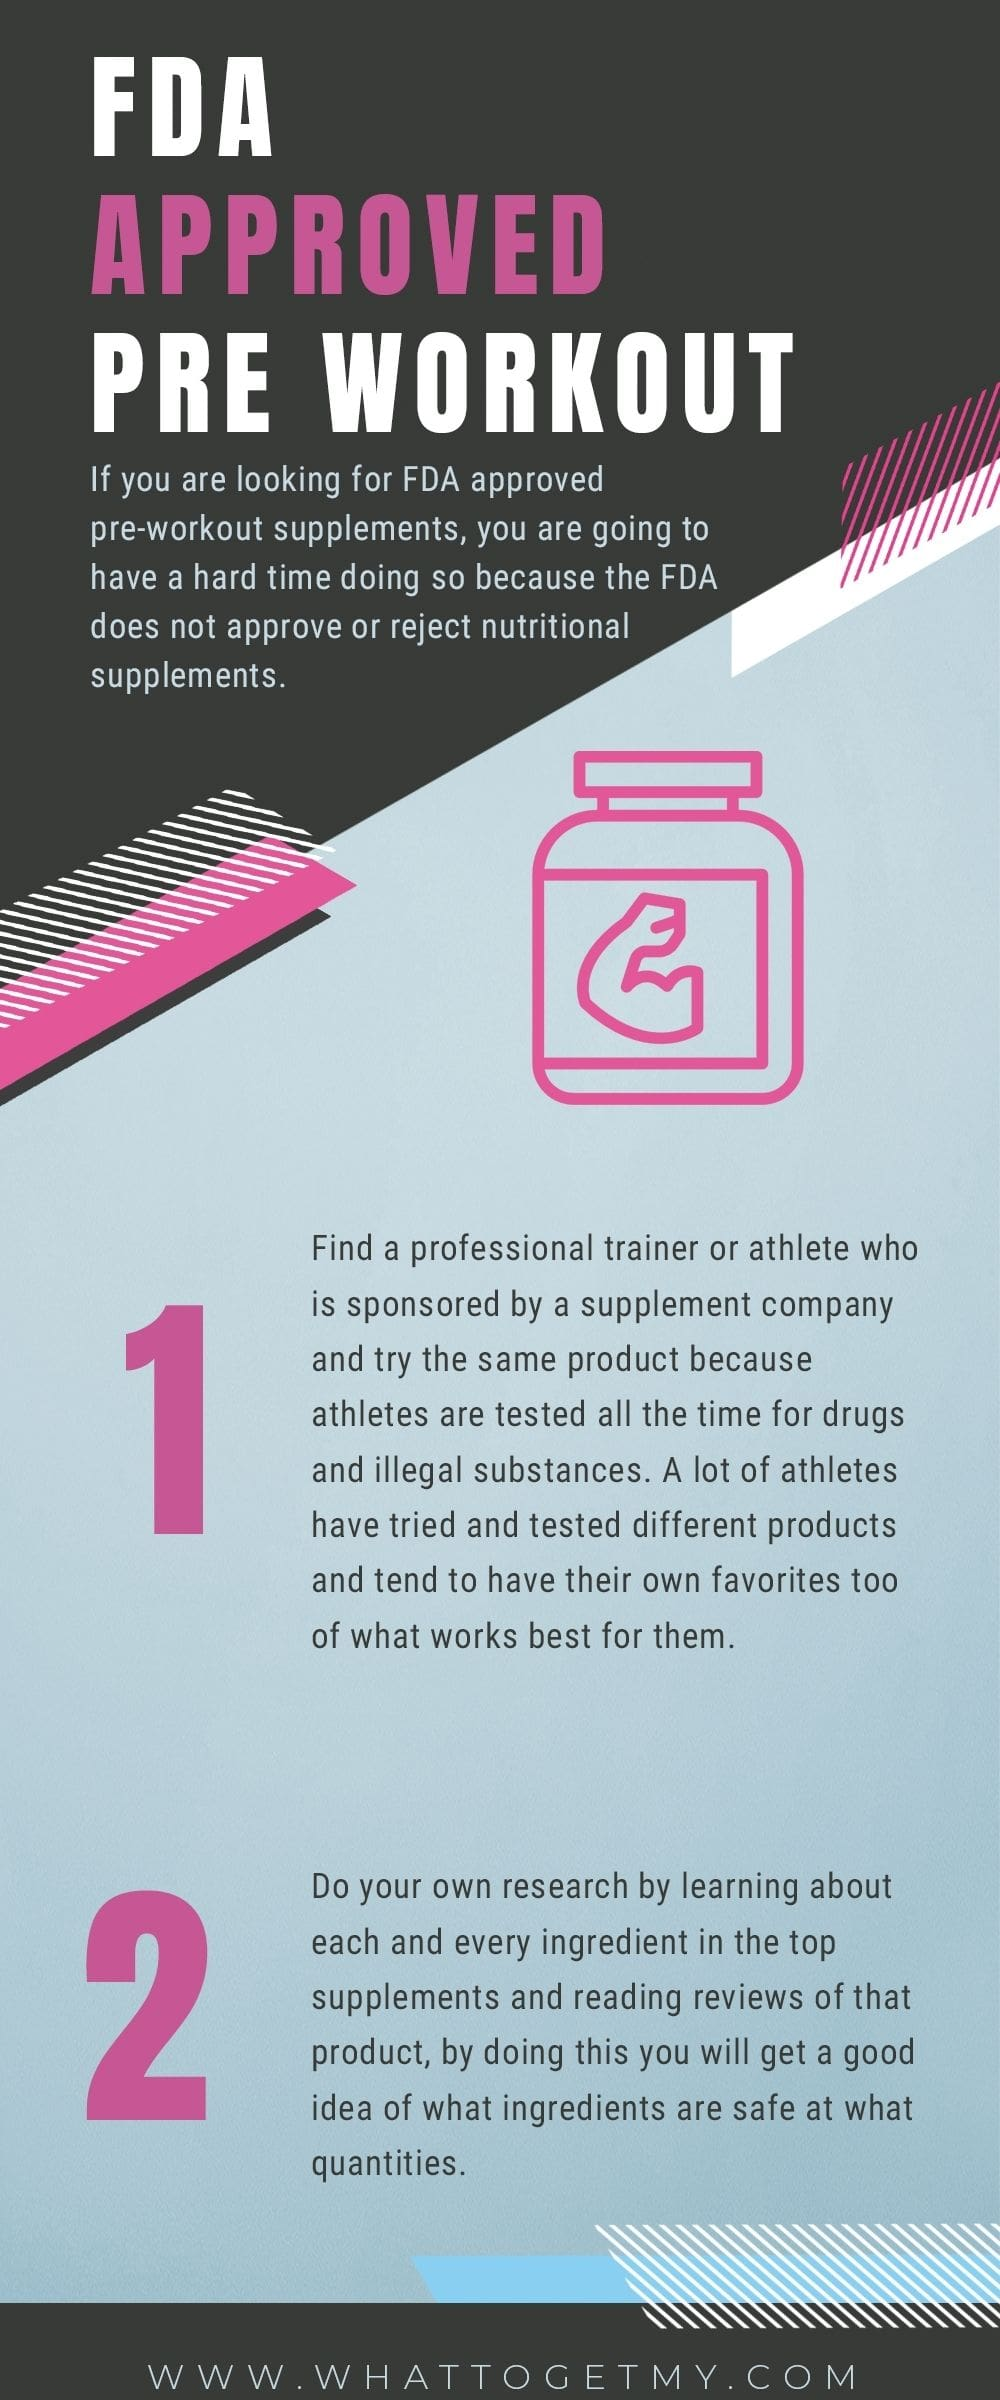 Infographic FDA APPROVED PRE WORKOUT